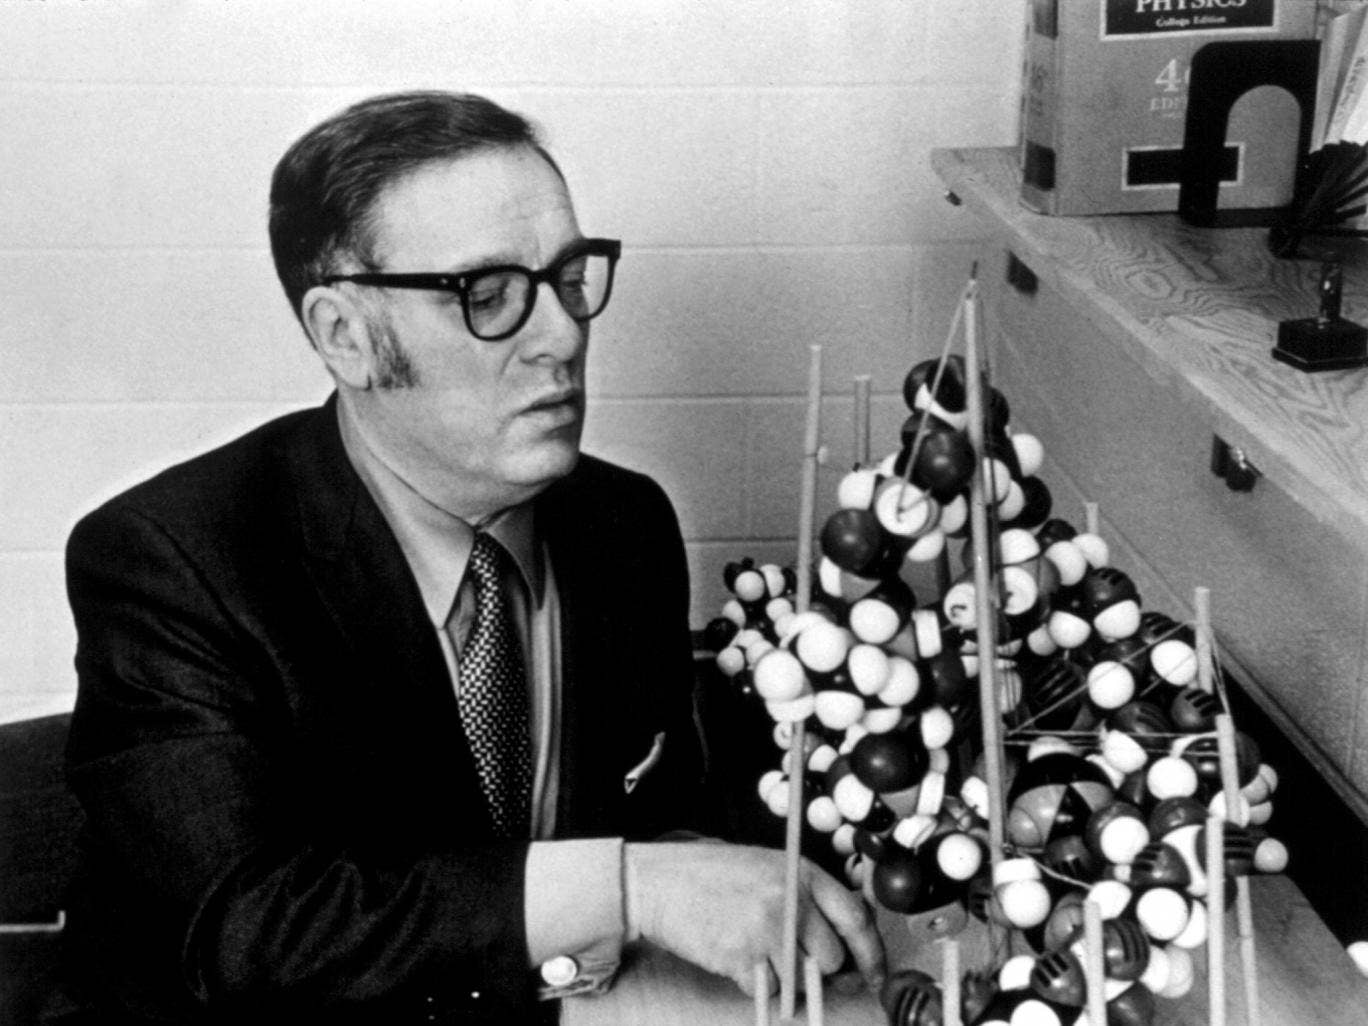 Isaac Asimov had worked as a biochemist at Boston University for more than a decade